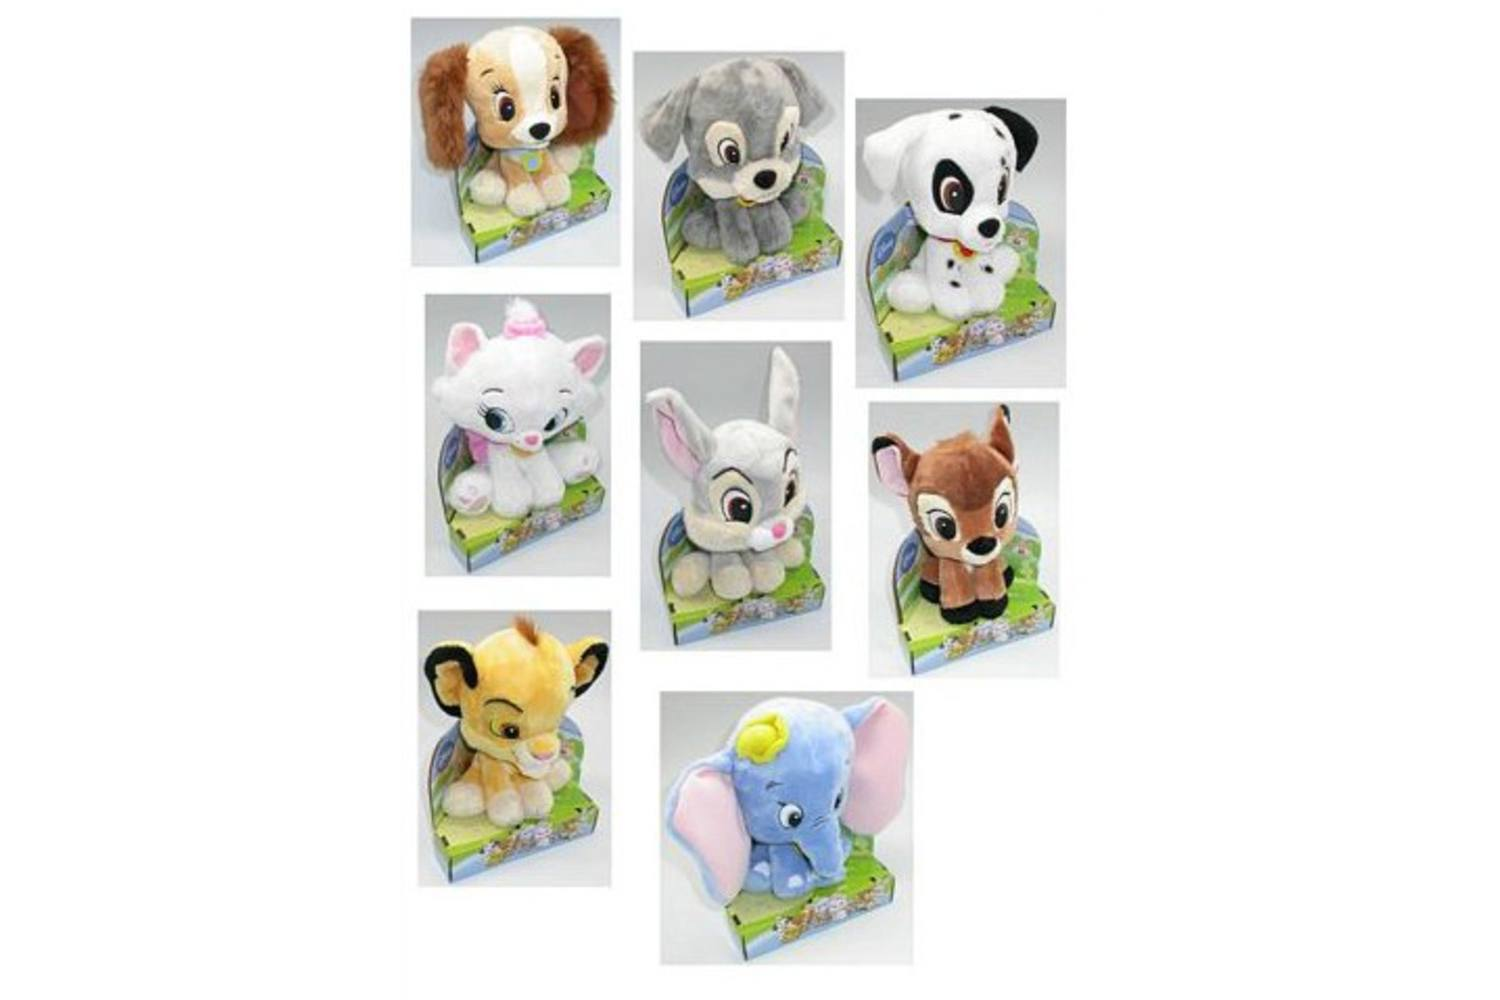 Plush, Disney, h 25cm, 8 assorti 1